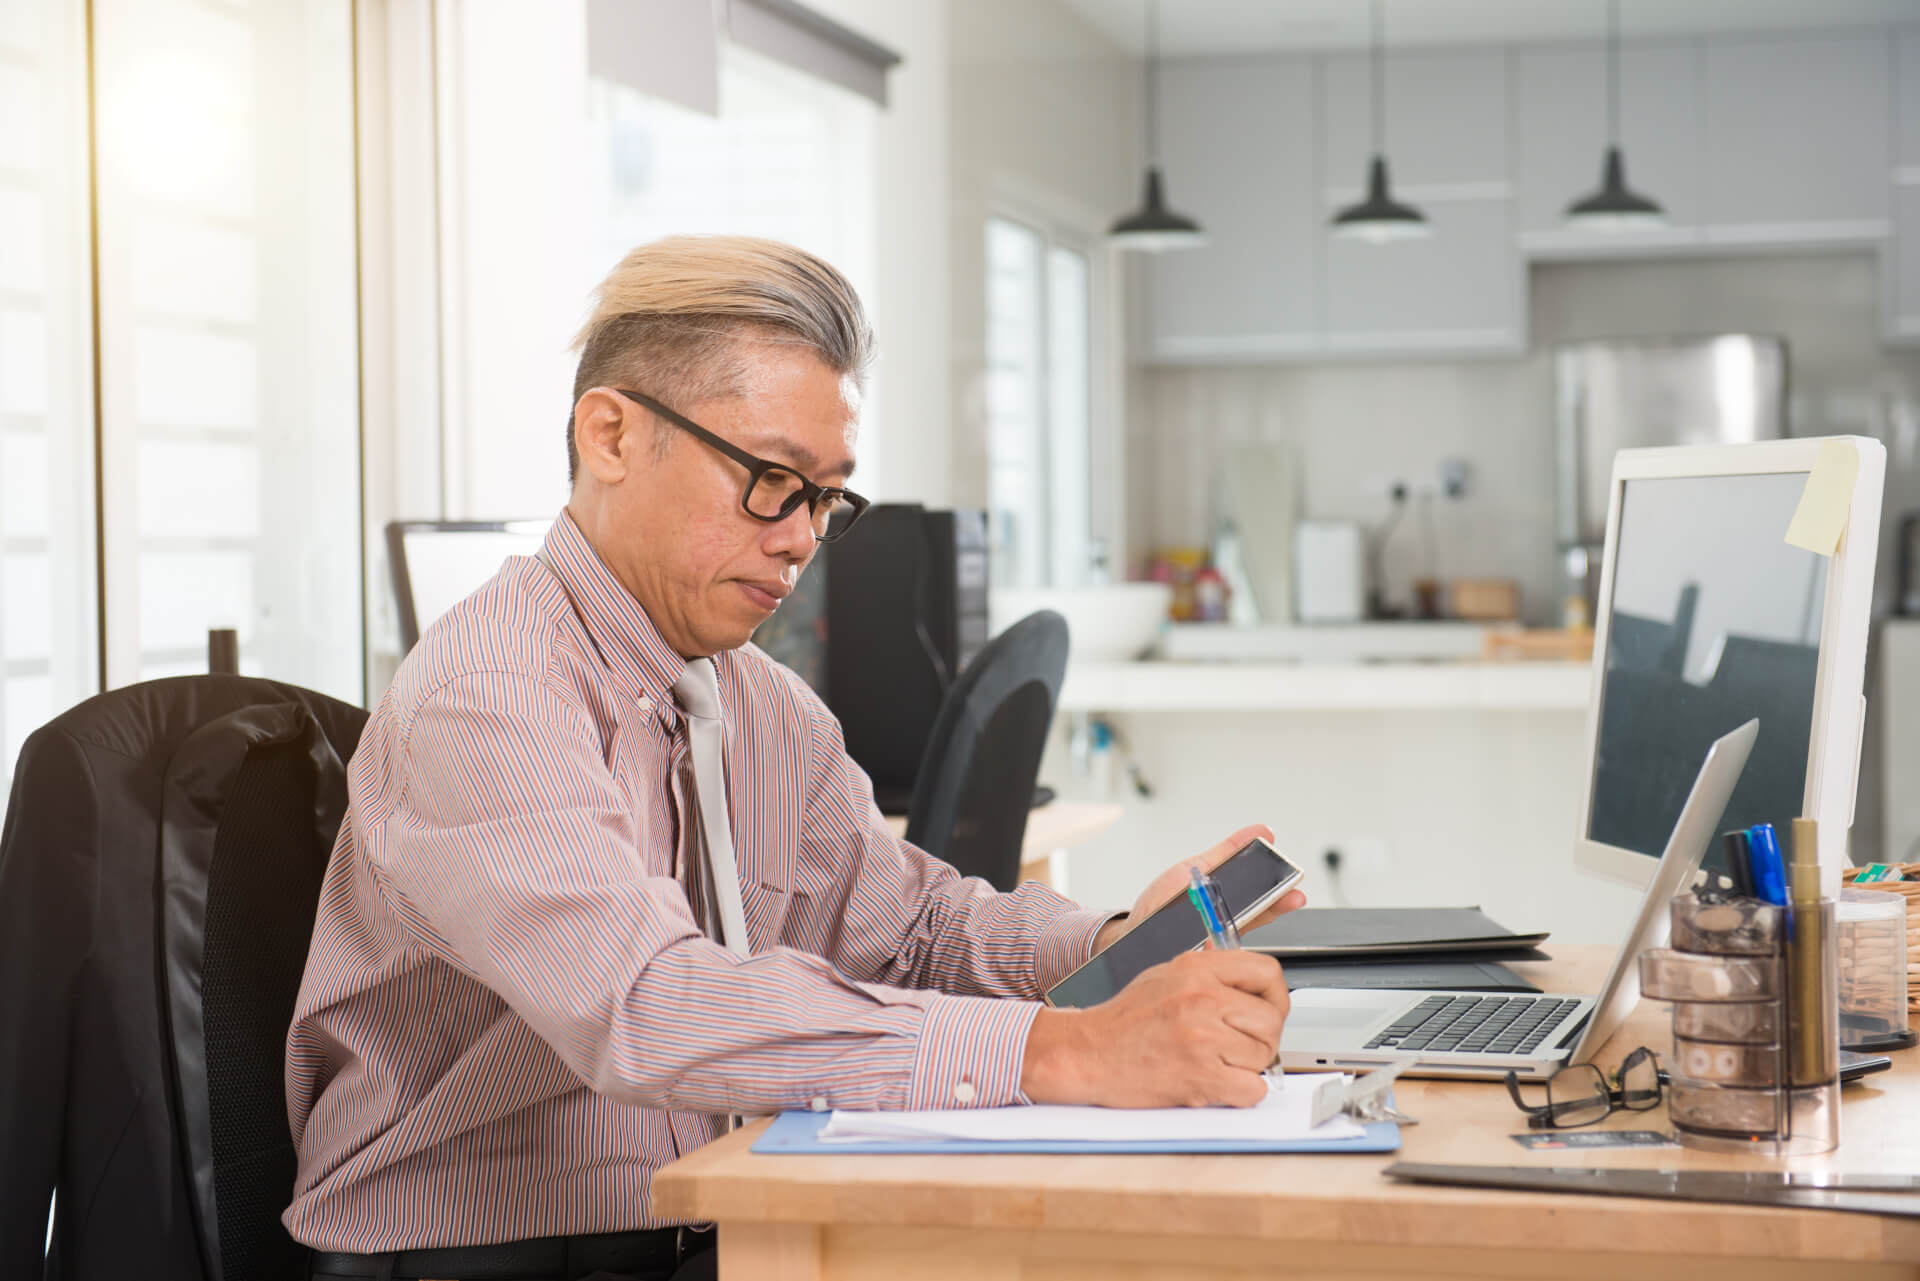 How a Formal Telework Policy Can Help You & Your Managers